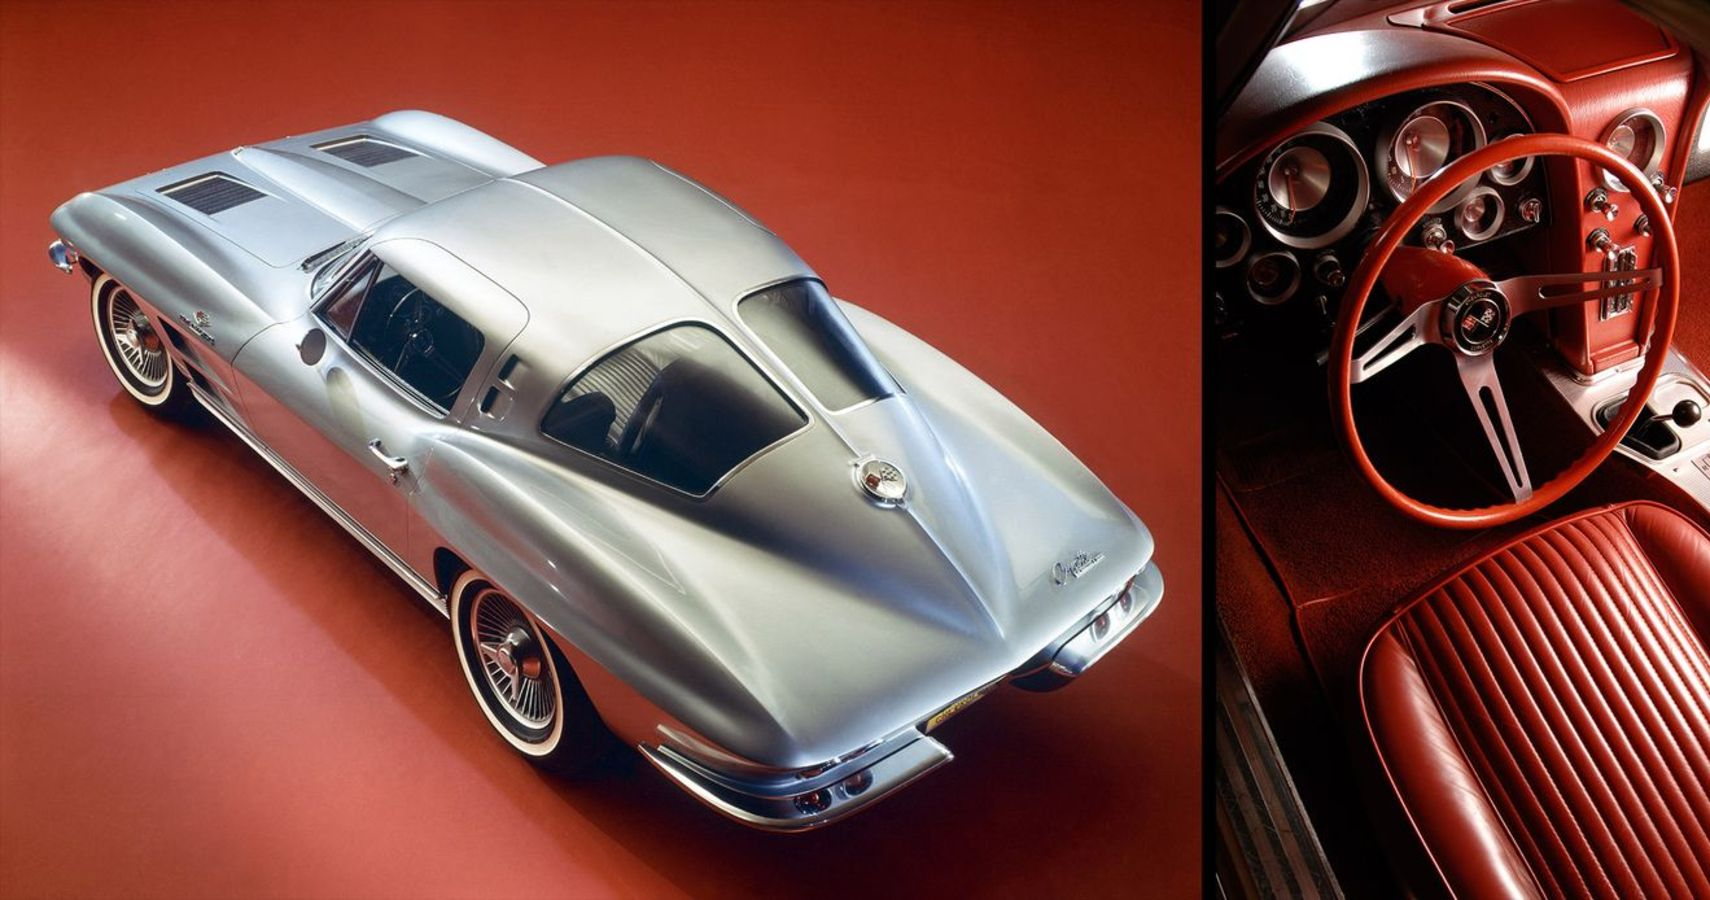 The 1963 Chevrolet Corvette Sting Ray Coupe Is One Of The Greatest American Designs